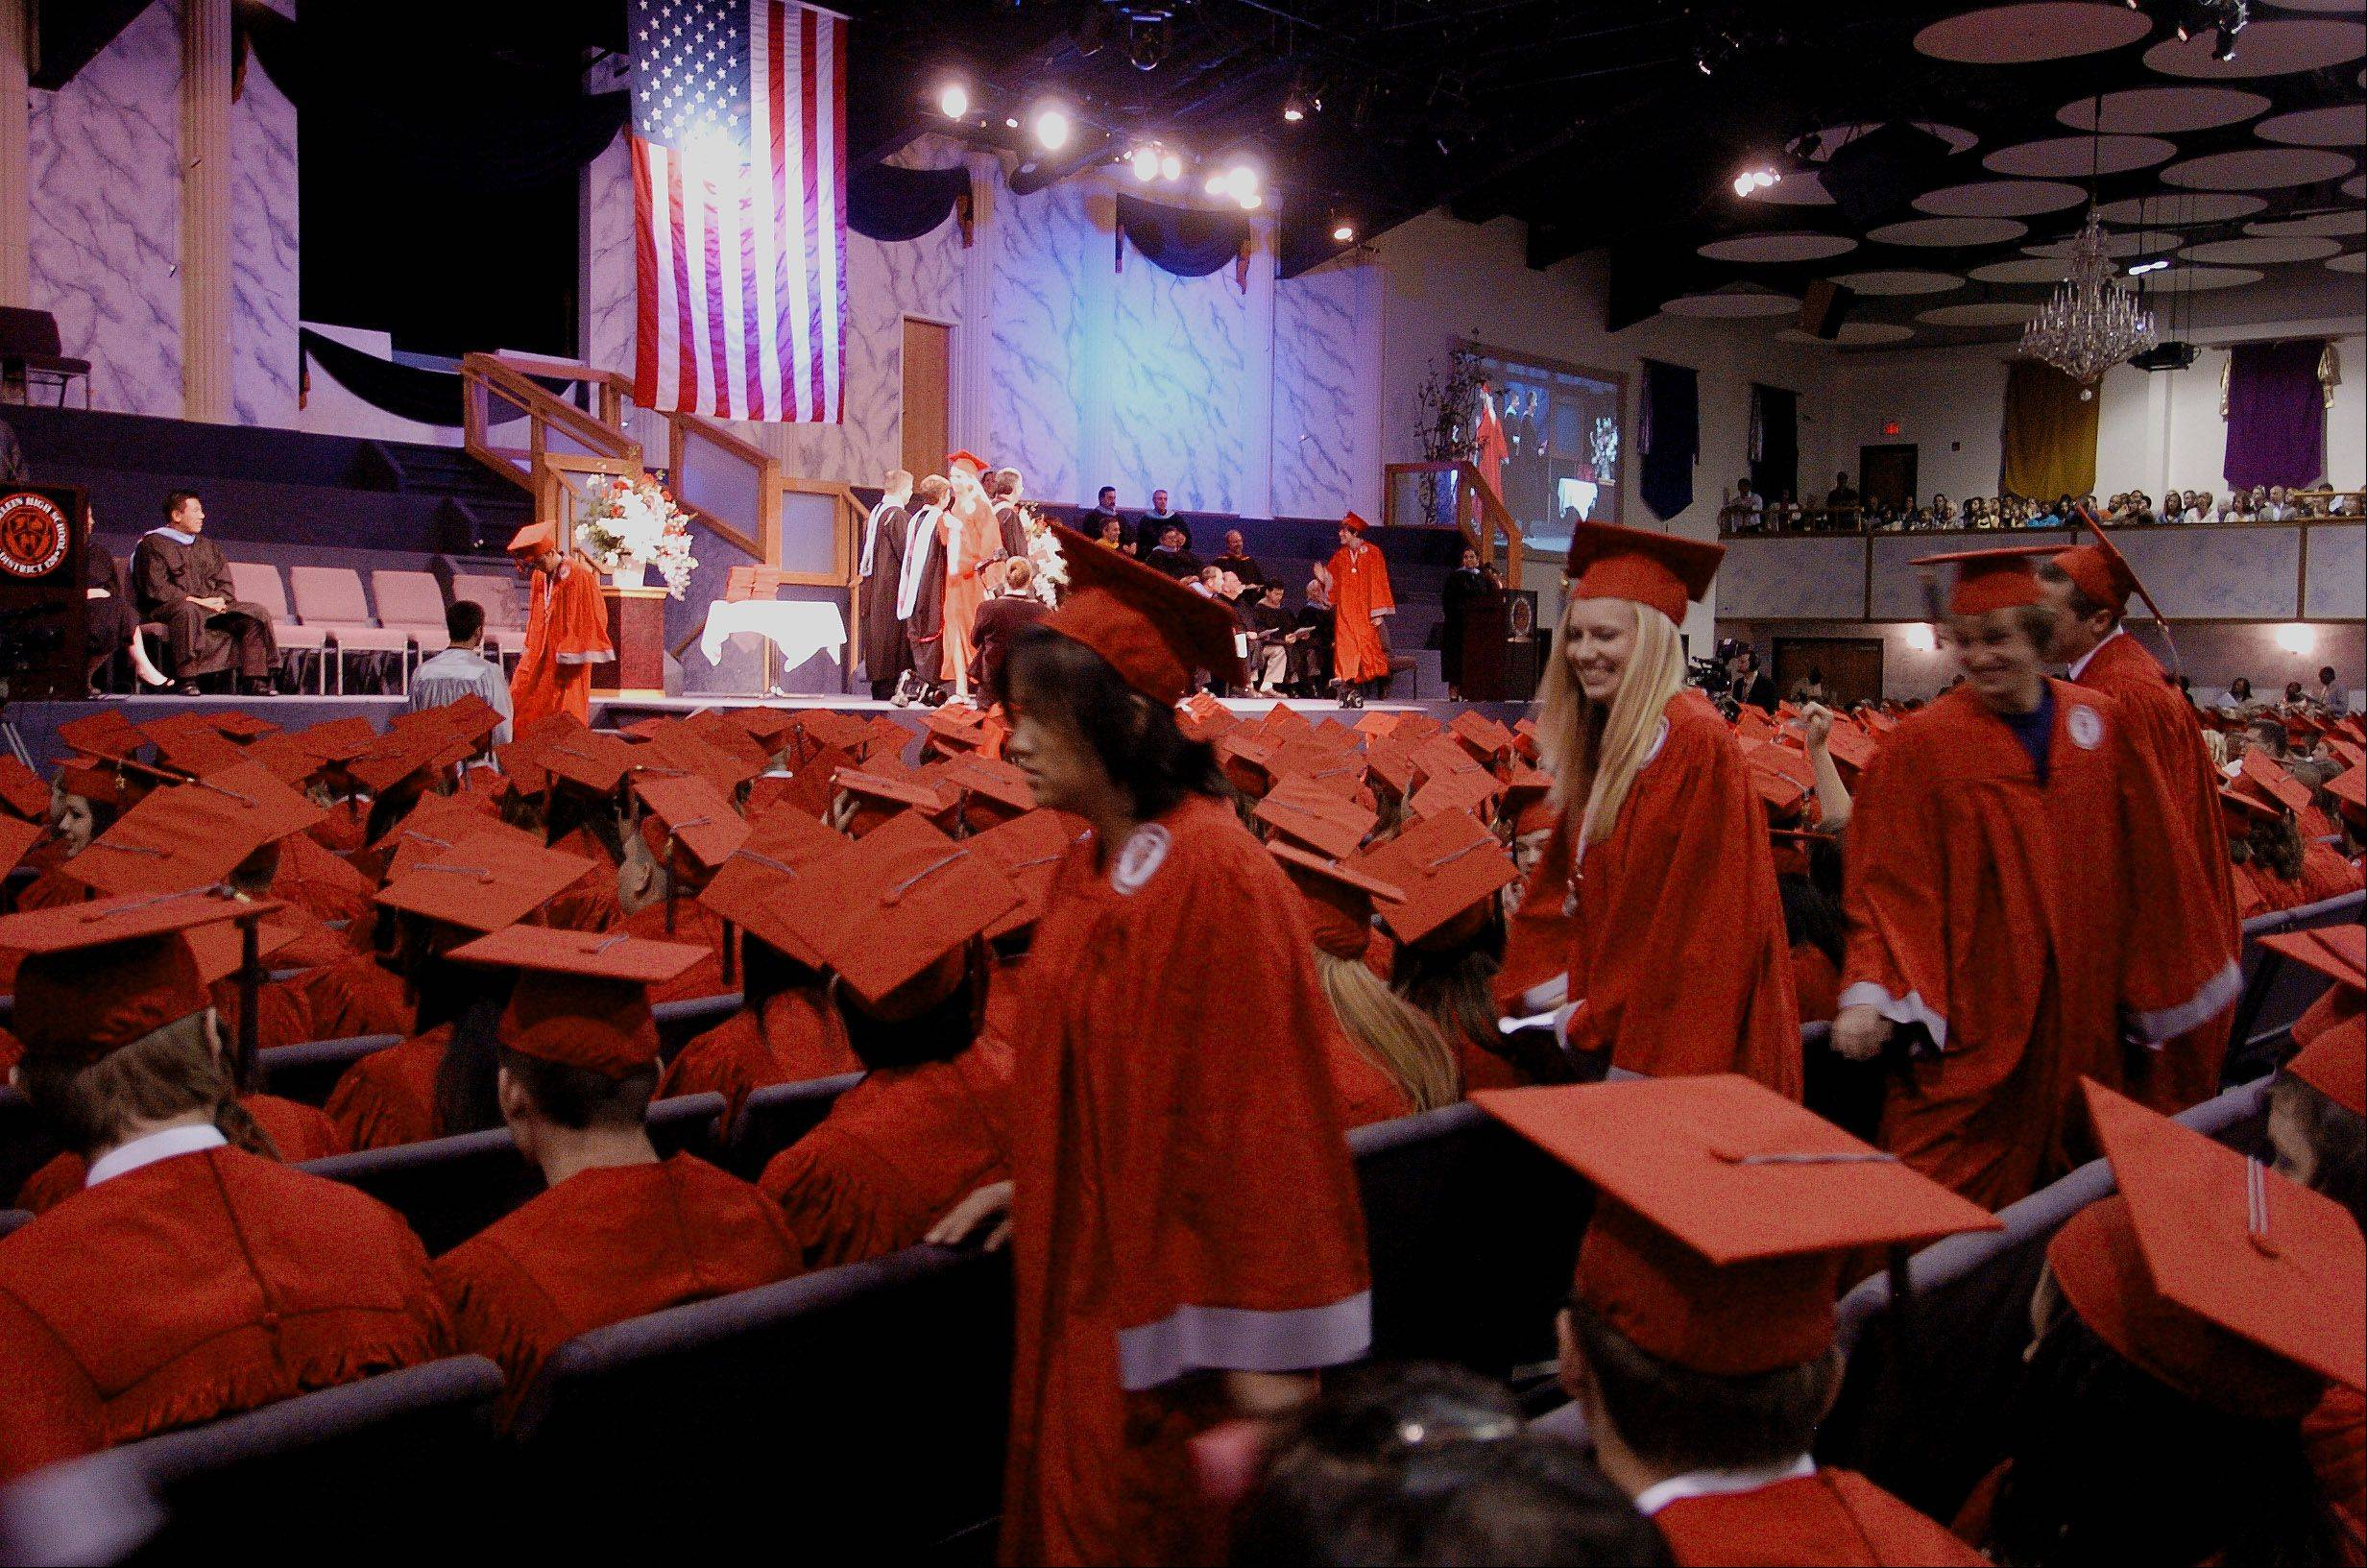 Mundelein High School's commencement ceremony will move to the Sears Centre in Hoffman Estates in 2014.